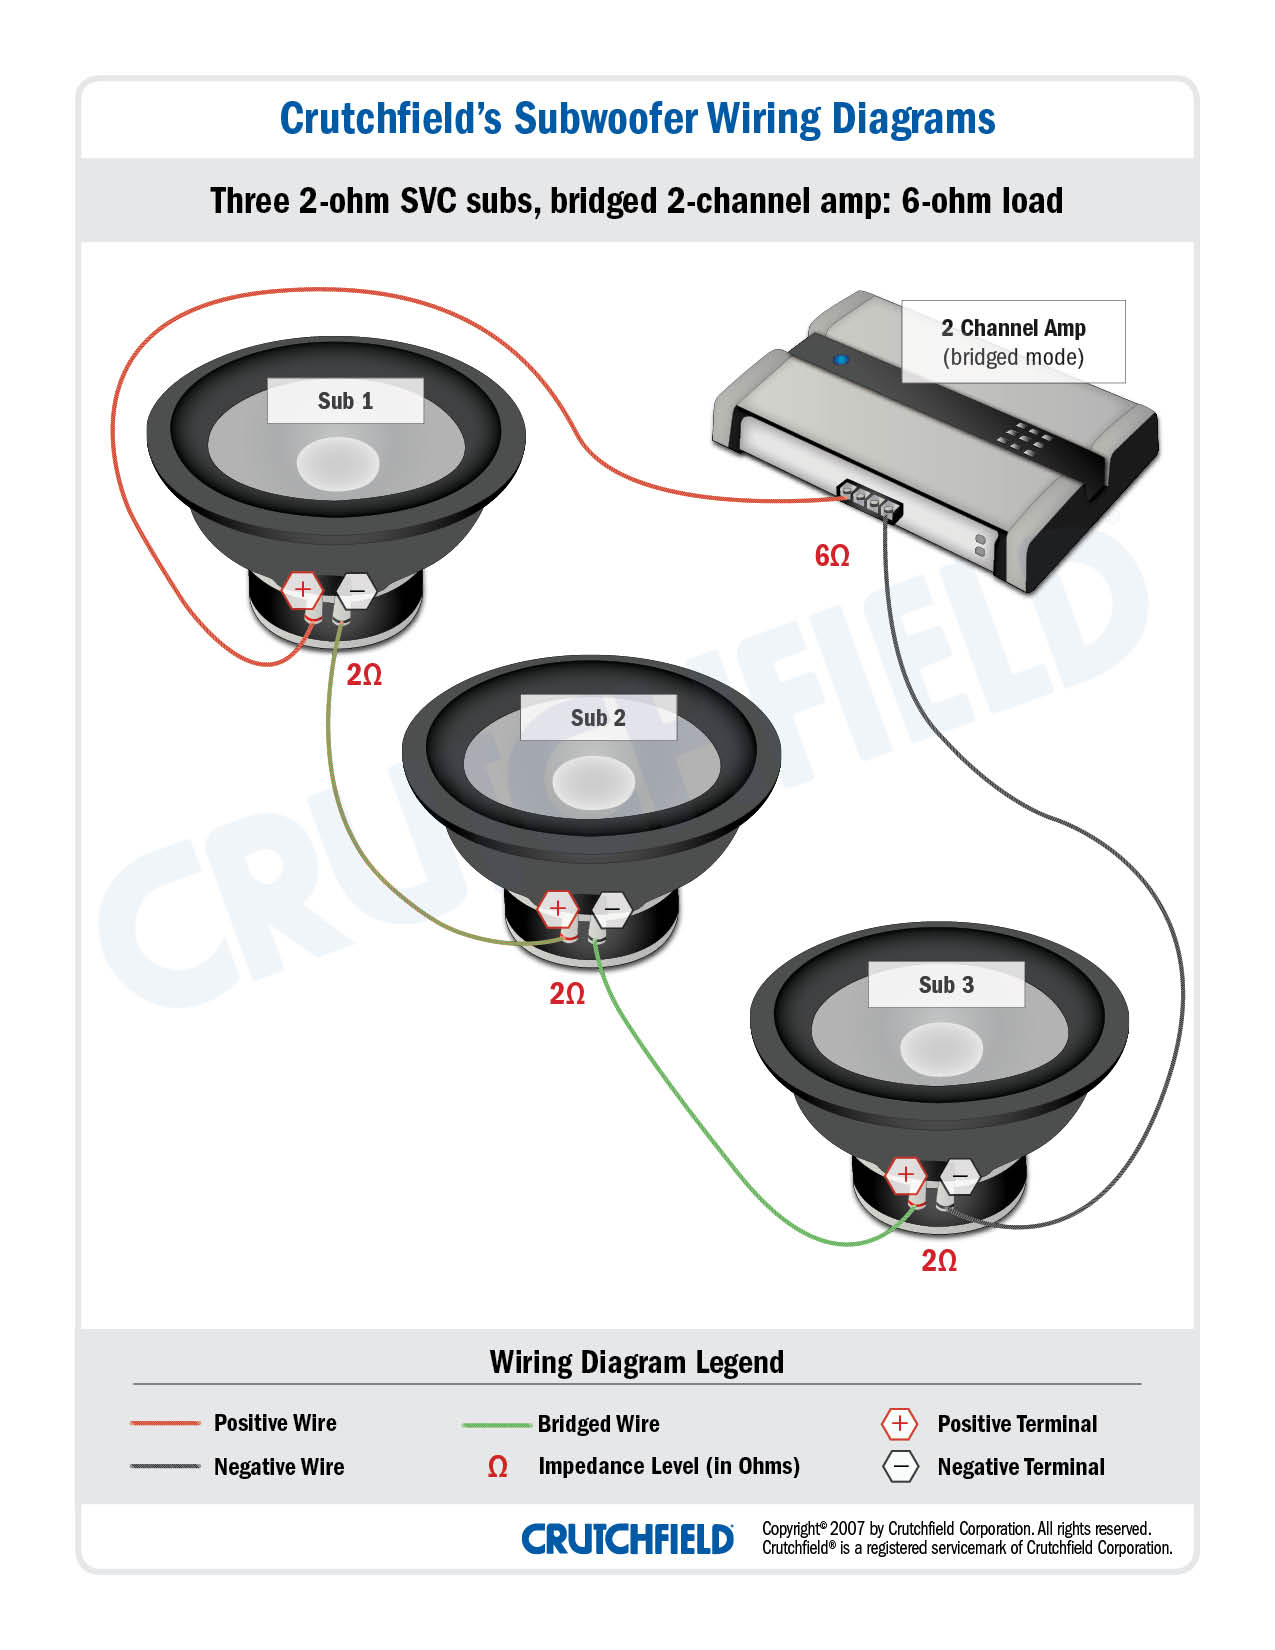 subwoofer wiring diagrams rh crutchfield com Ohm Subwoofer Wiring Home Subwoofer Wiring